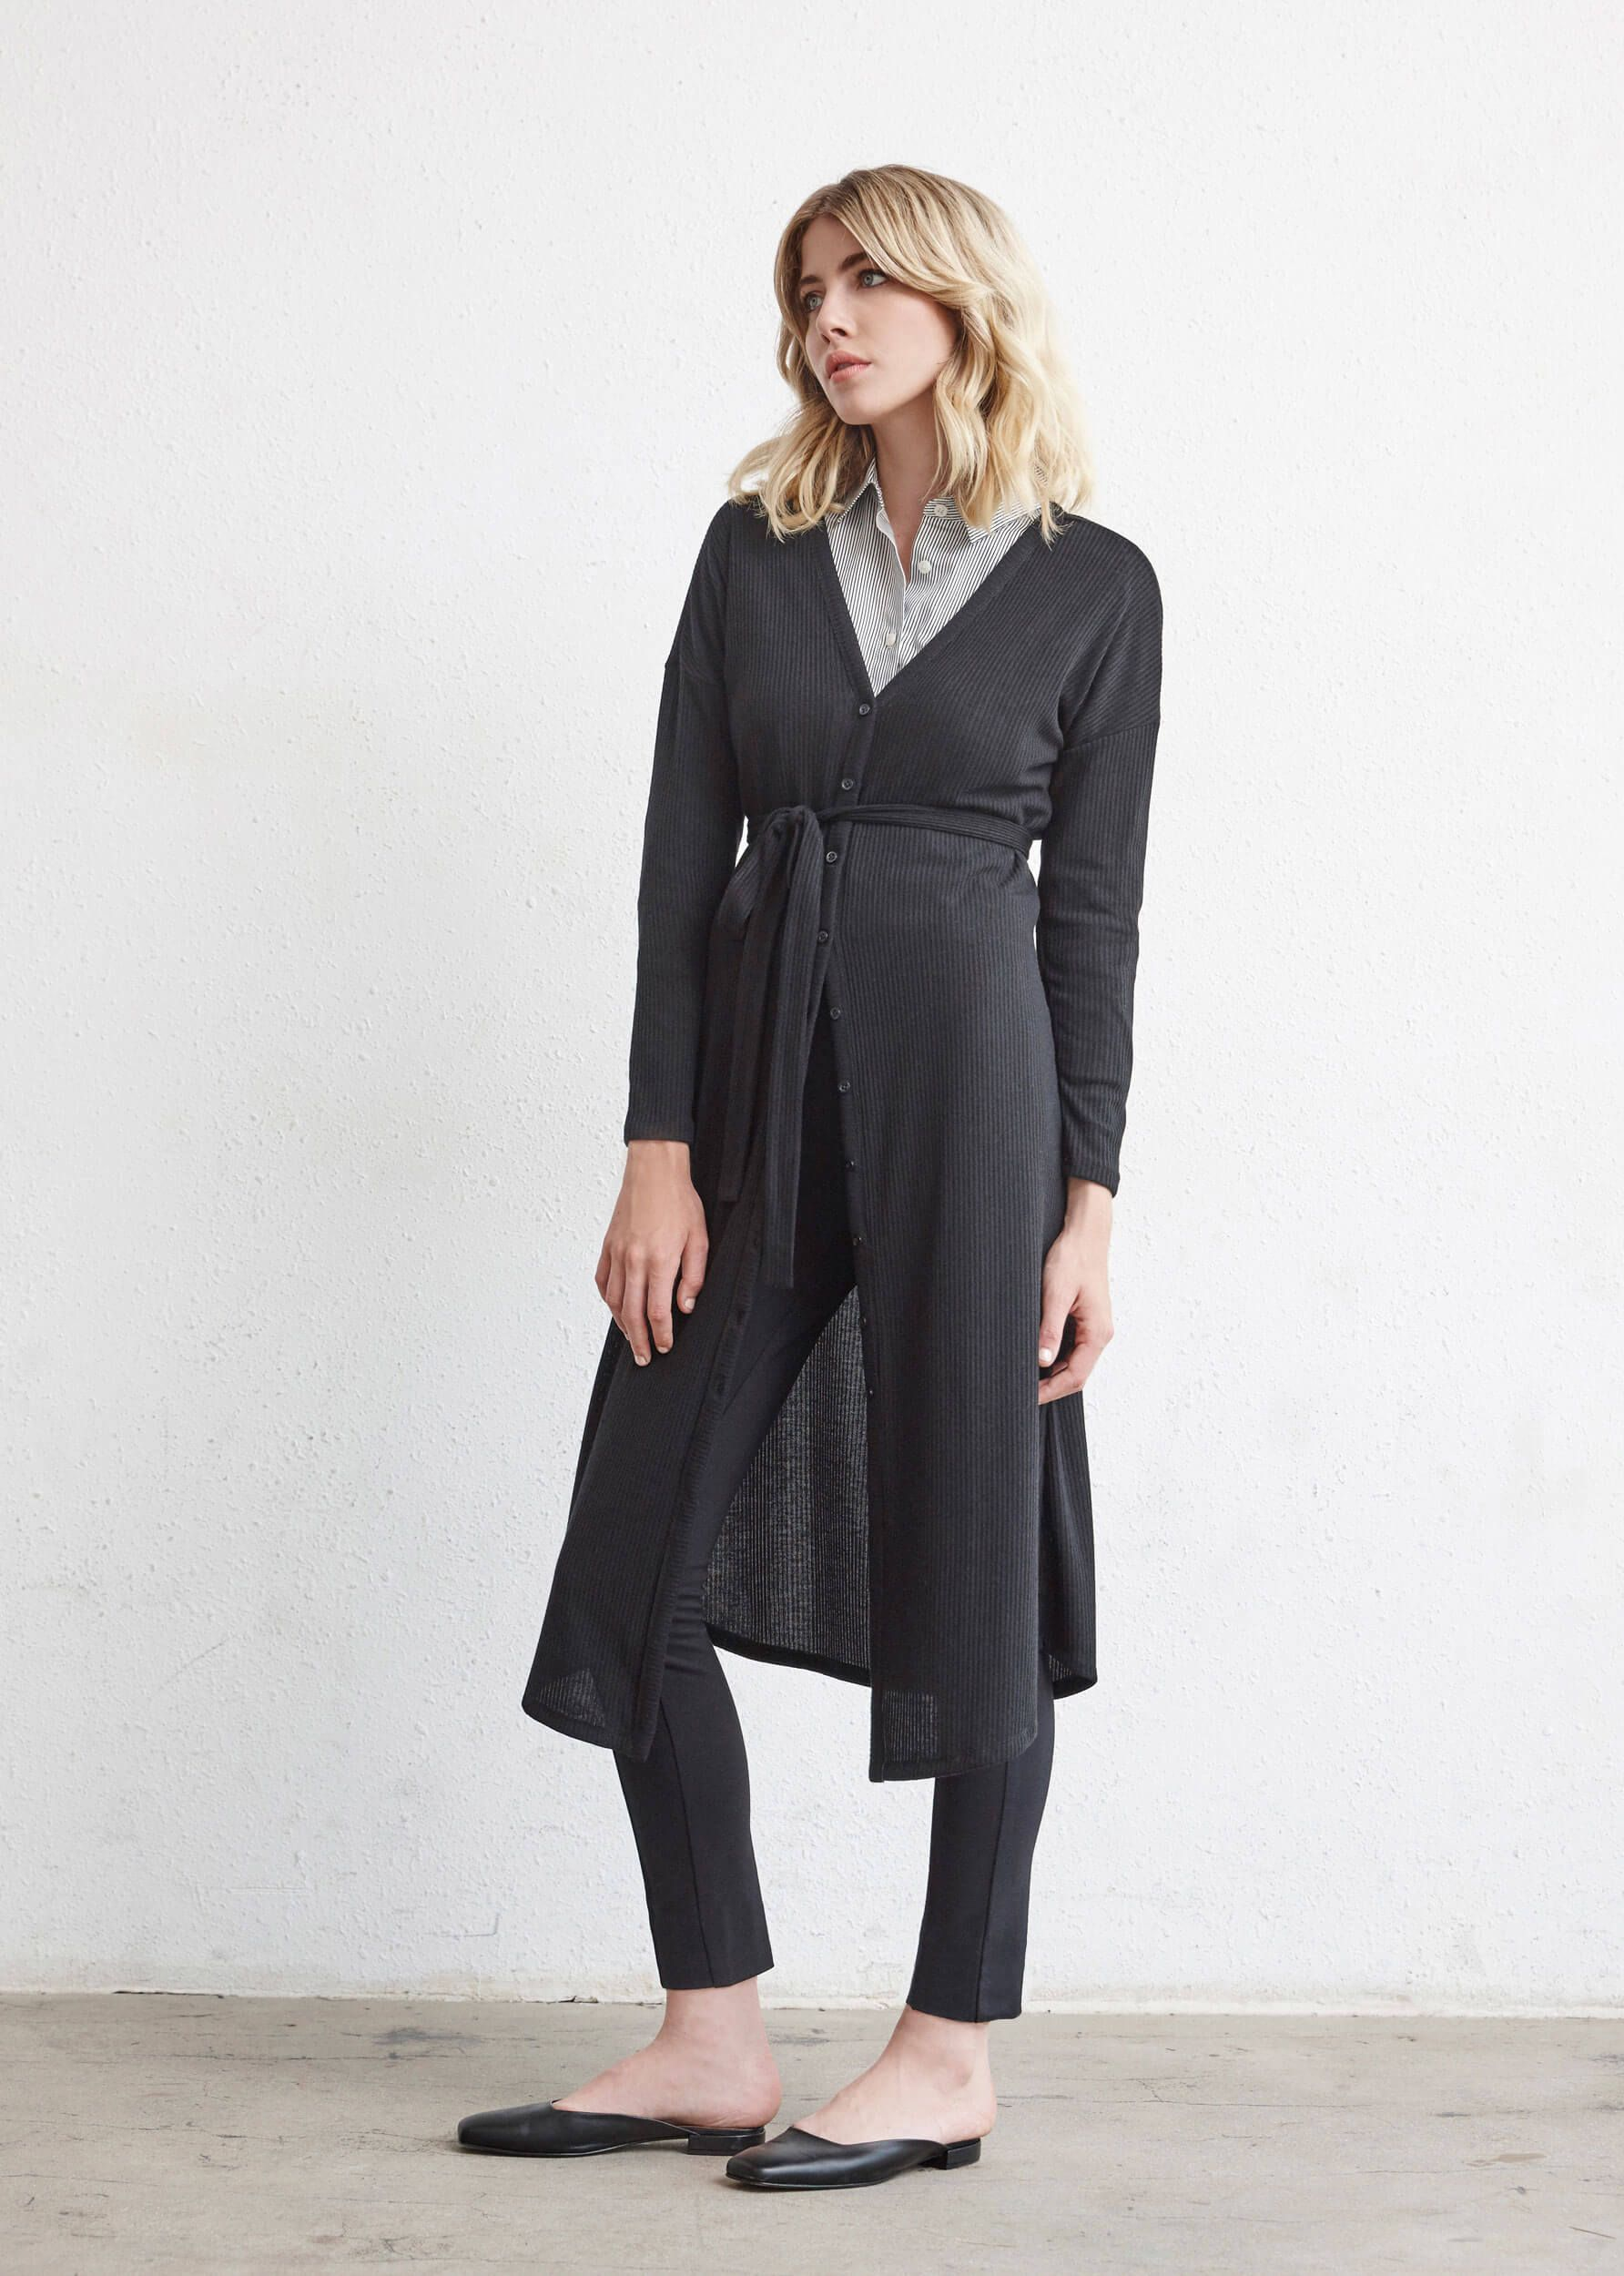 9eabfa115afc69 The Long Cardigan + The Convertible Shirt Dress + The Stretch Ankle Pant    5 pieces = 30 outfits   The Minimal Capsule #capsulewardrobe #womensfashion  ...